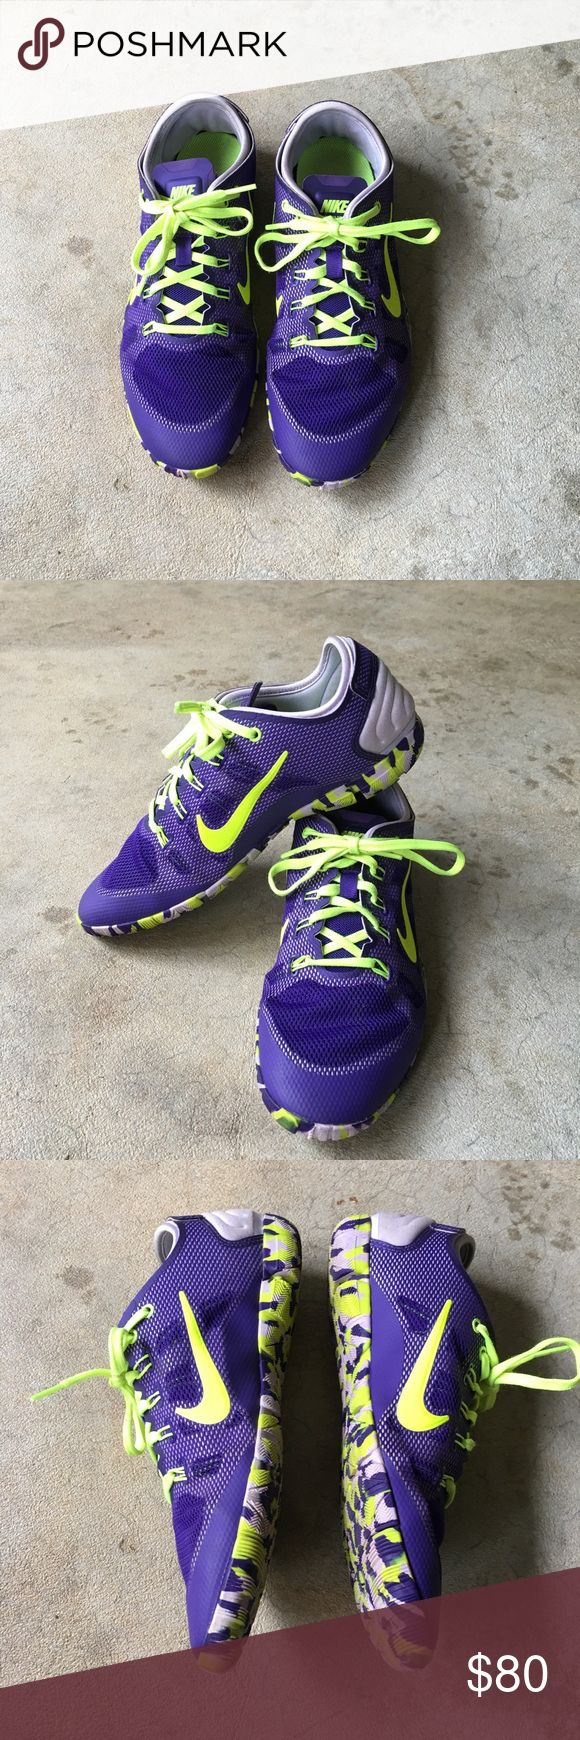 Nike tennis shoes Nike purple trainers, perfect condition, only worn a few times. Very comfortable and great for working out in. Nike Shoes